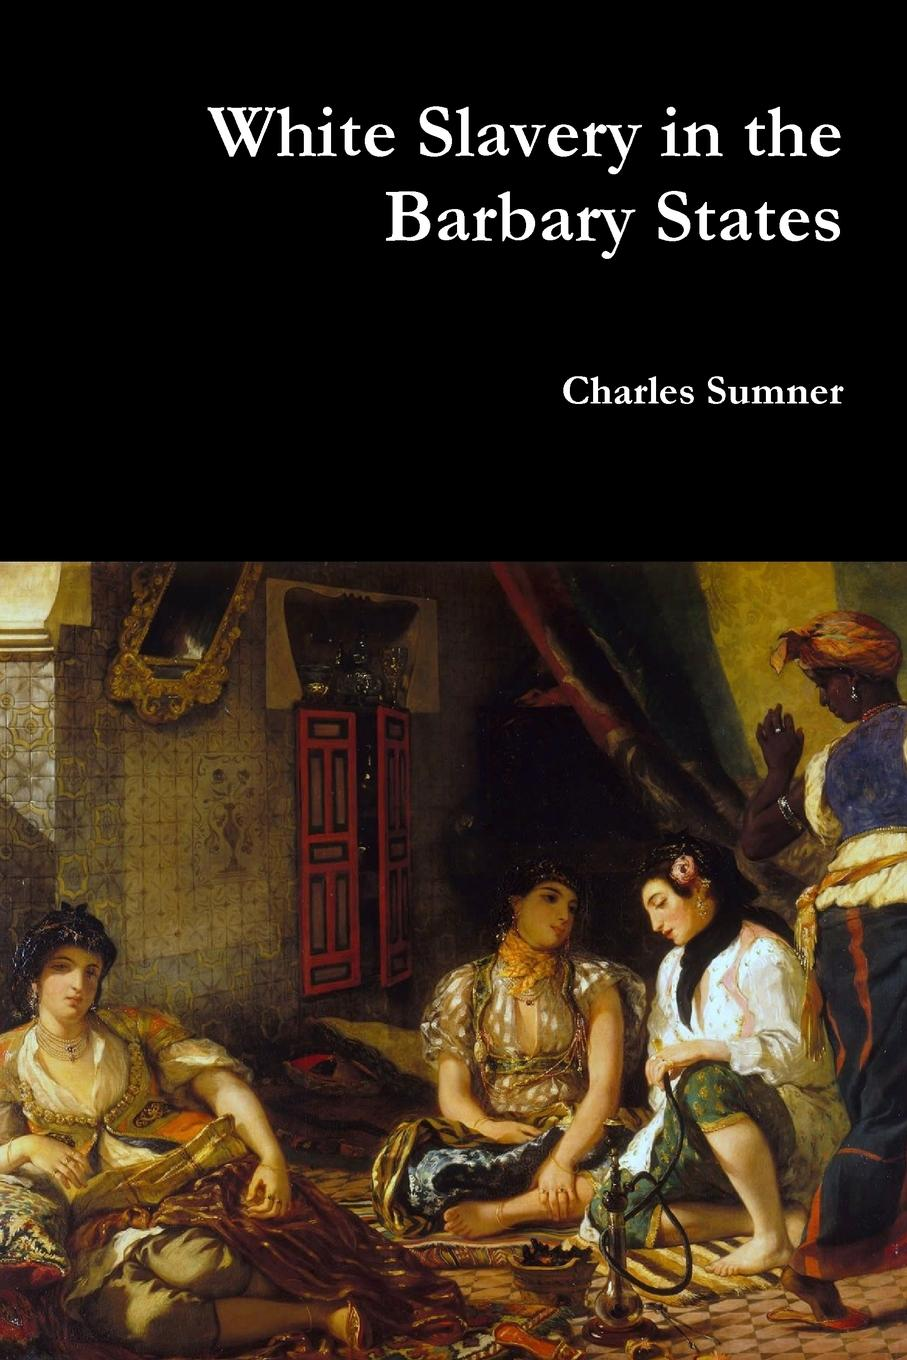 Charles Sumner White Slavery in the Barbary States charles sumner white slavery in the barbary states